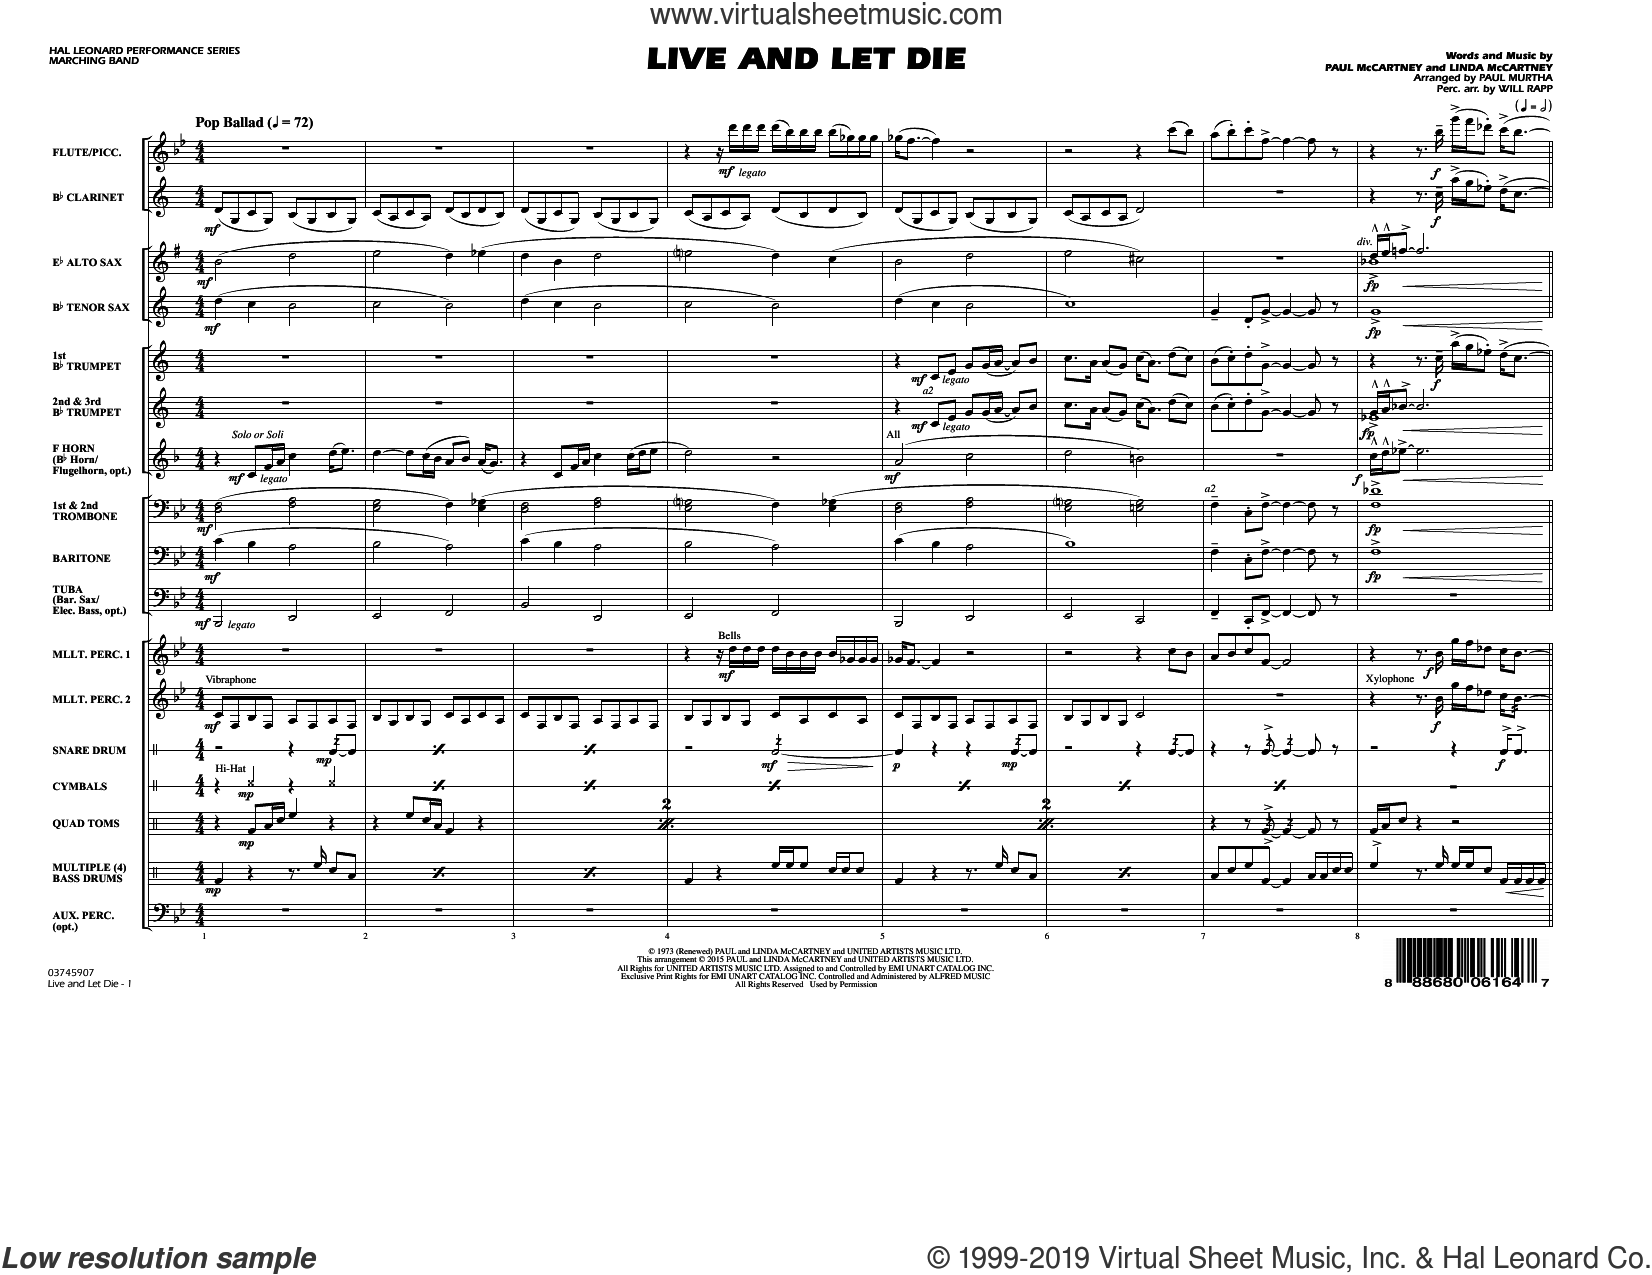 Live and Let Die, complete collection (COMPLETE) sheet music for marching band by Paul McCartney, Linda McCartney, Paul Murtha and Wings, intermediate skill level